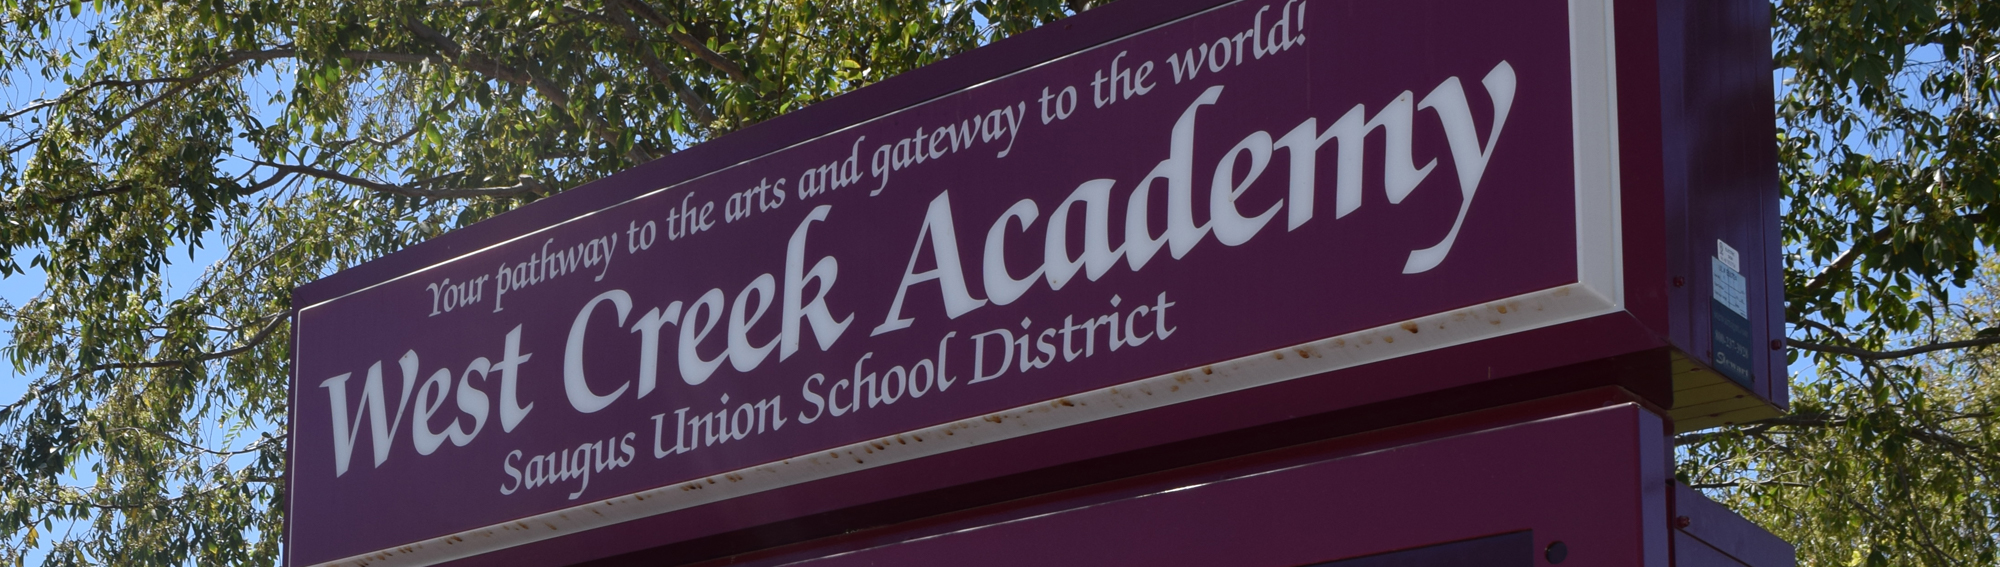 sign that reads-Your pathway to the arts and gateway to the world! West Creek Academy Saugus Union School District